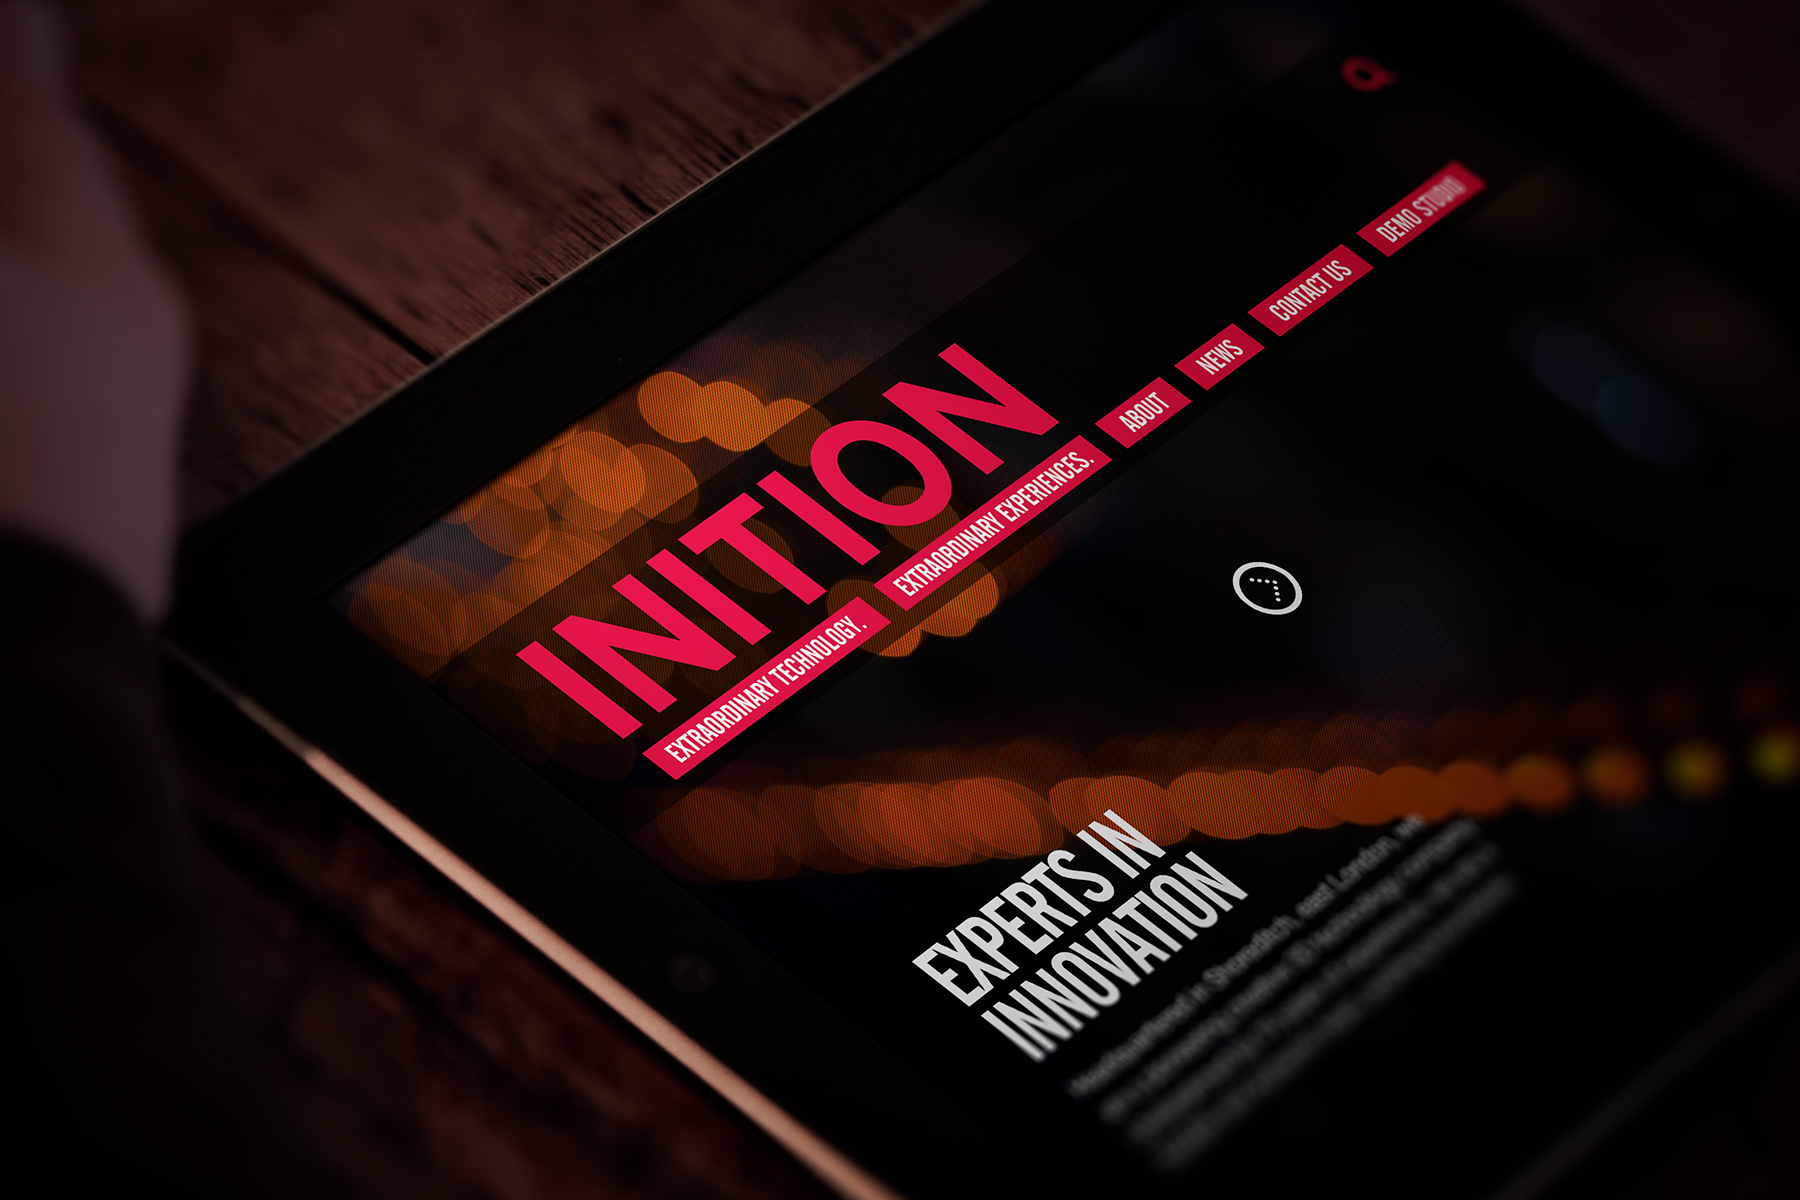 INITION | RESPONSIVE WEBSITE DESIGN AND BUILDRESPONSIVE WEBSITE DESIGN AND BUILDINITIONWebsite redesign for a pioneering interactive production company and emerging technology provider.